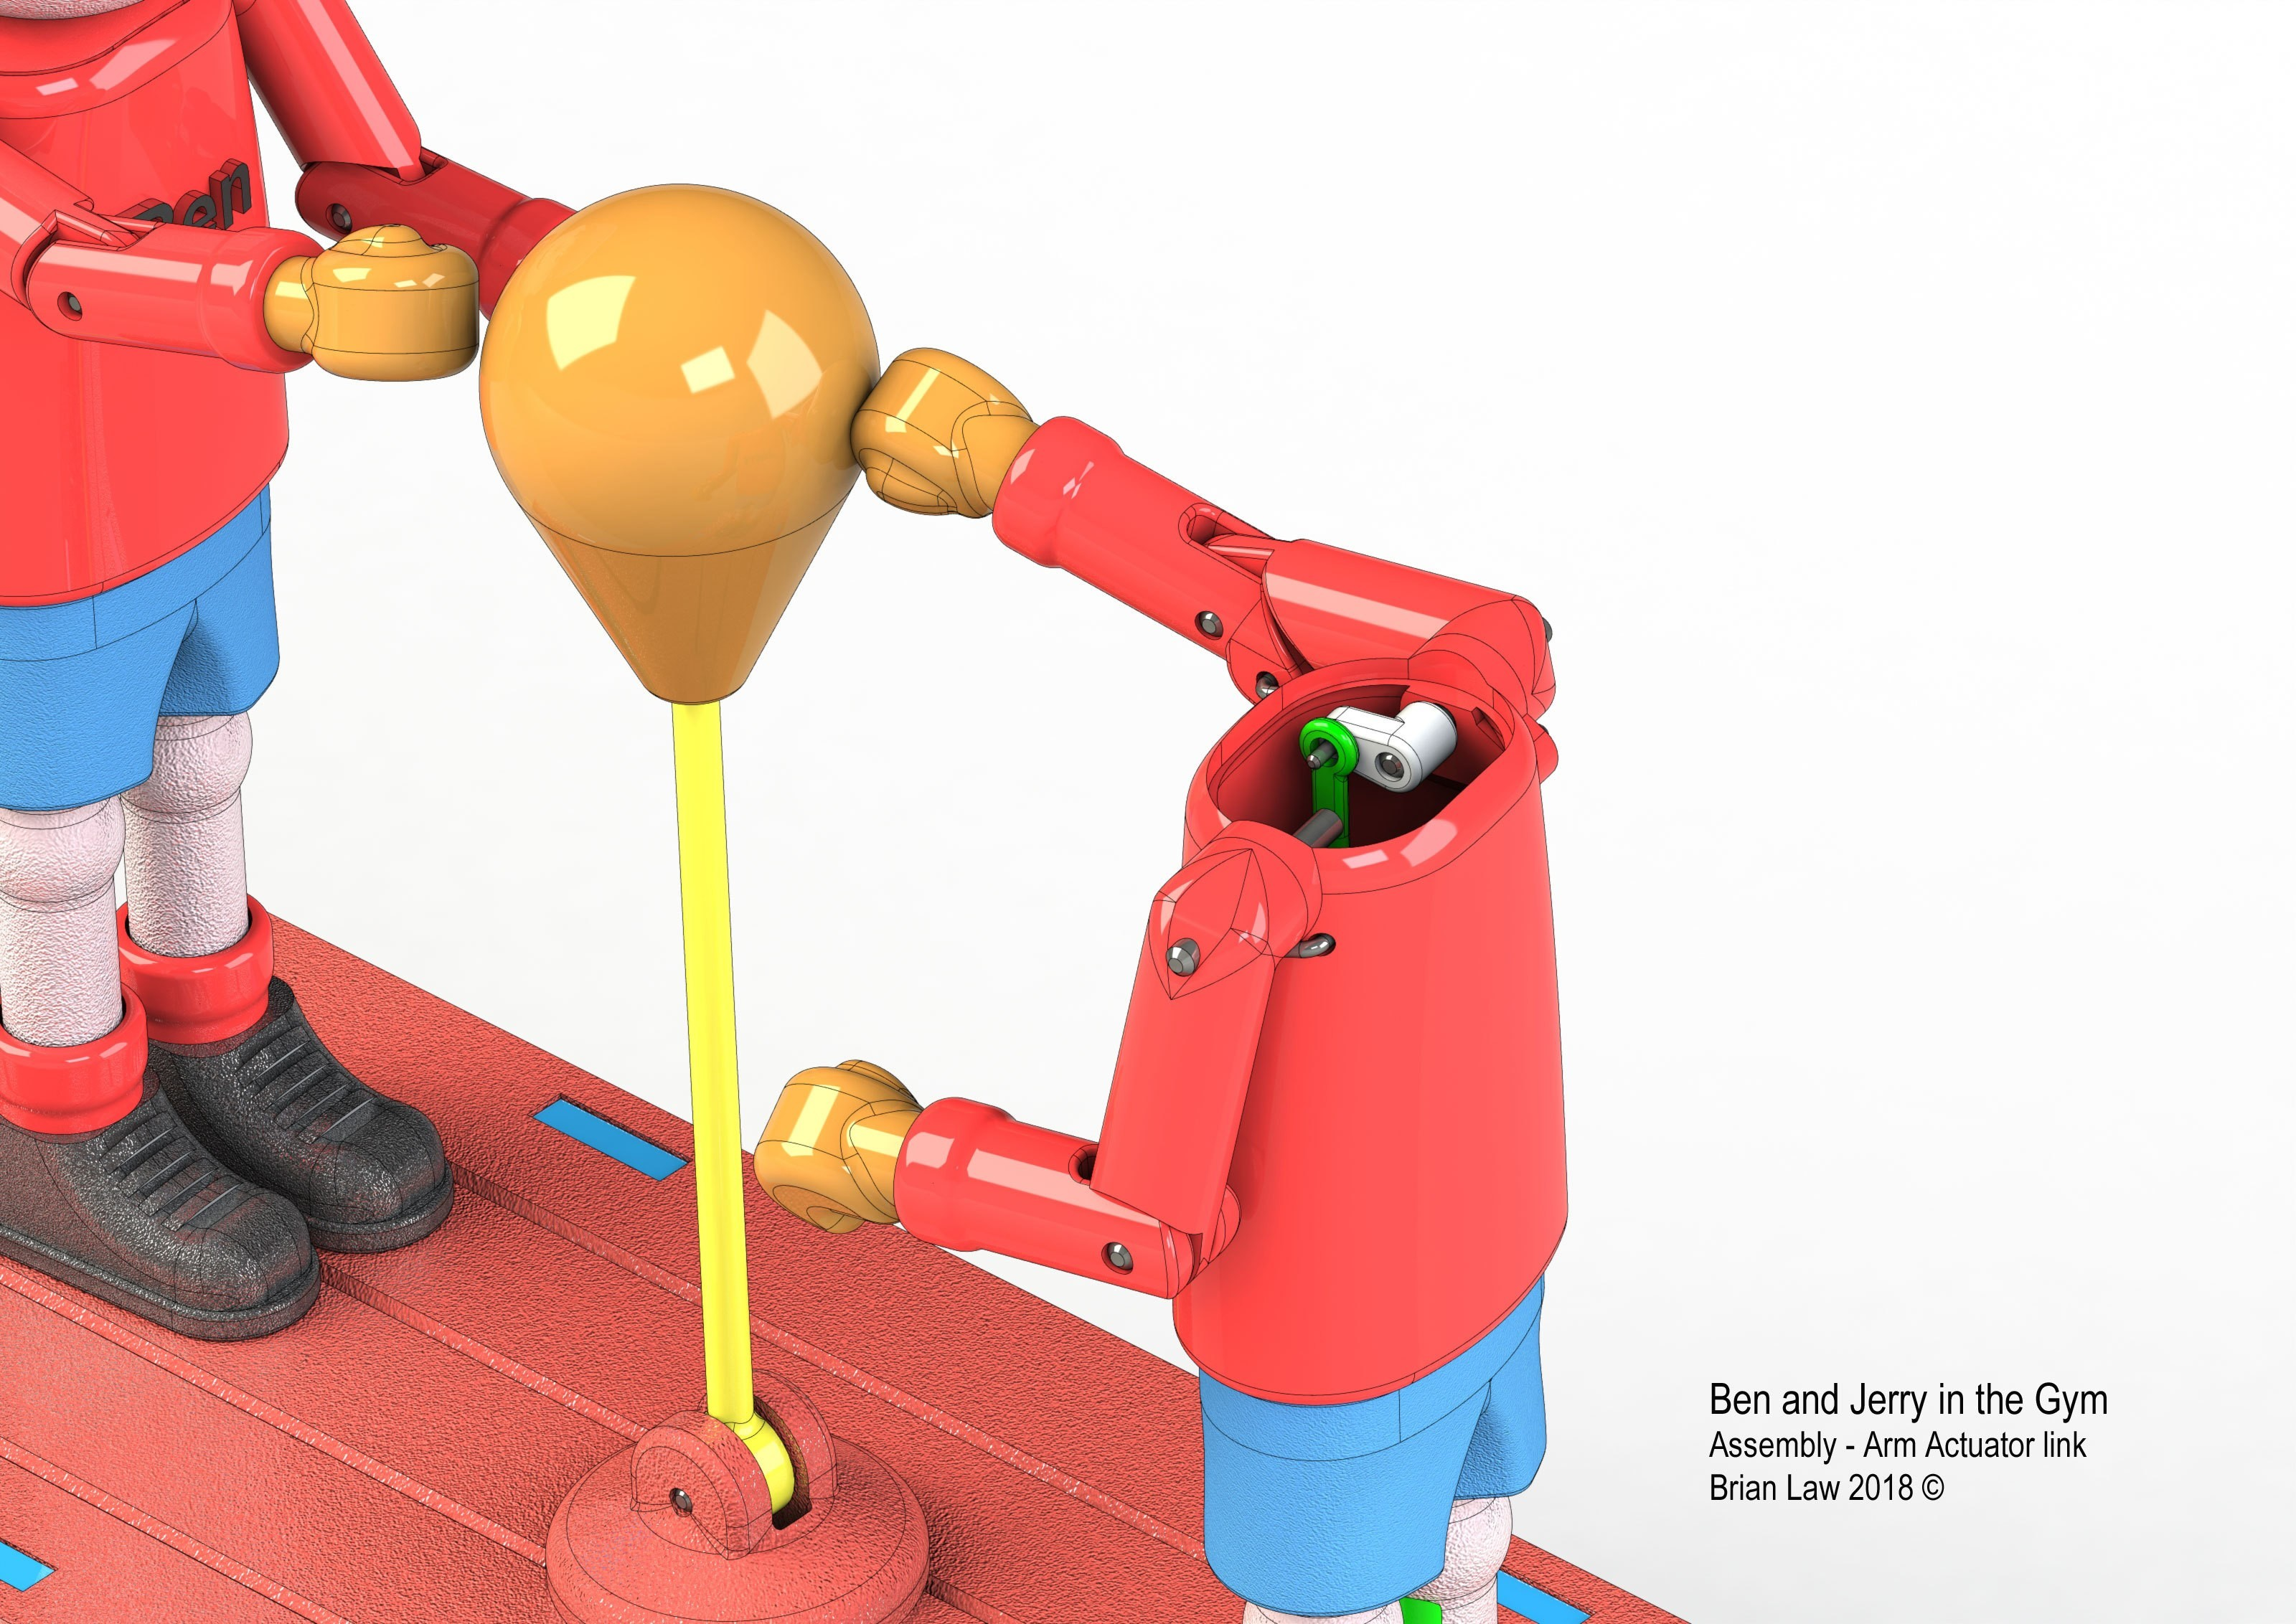 Ben-and-Jerry-4.jpg Download free STL file Ben and Jerry at the Gymnasium • 3D printer object, woodenclocks